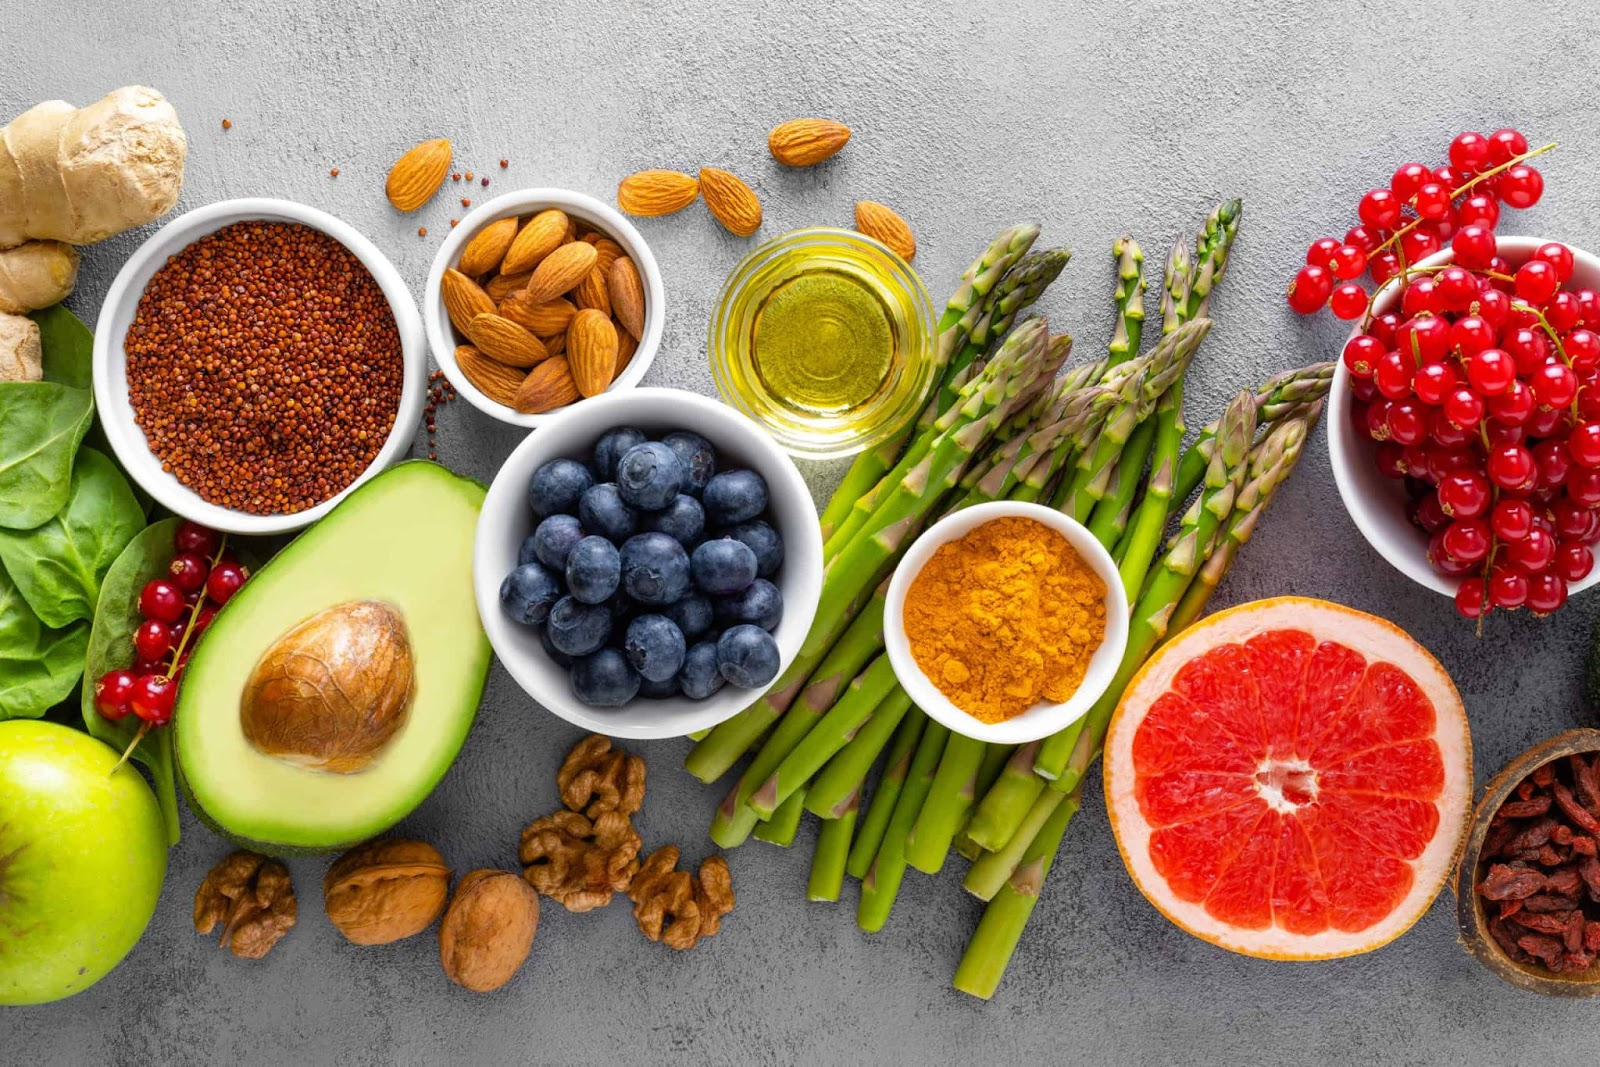 Top 4 Steps to Achieve Private Label Success With Dietary Supplements